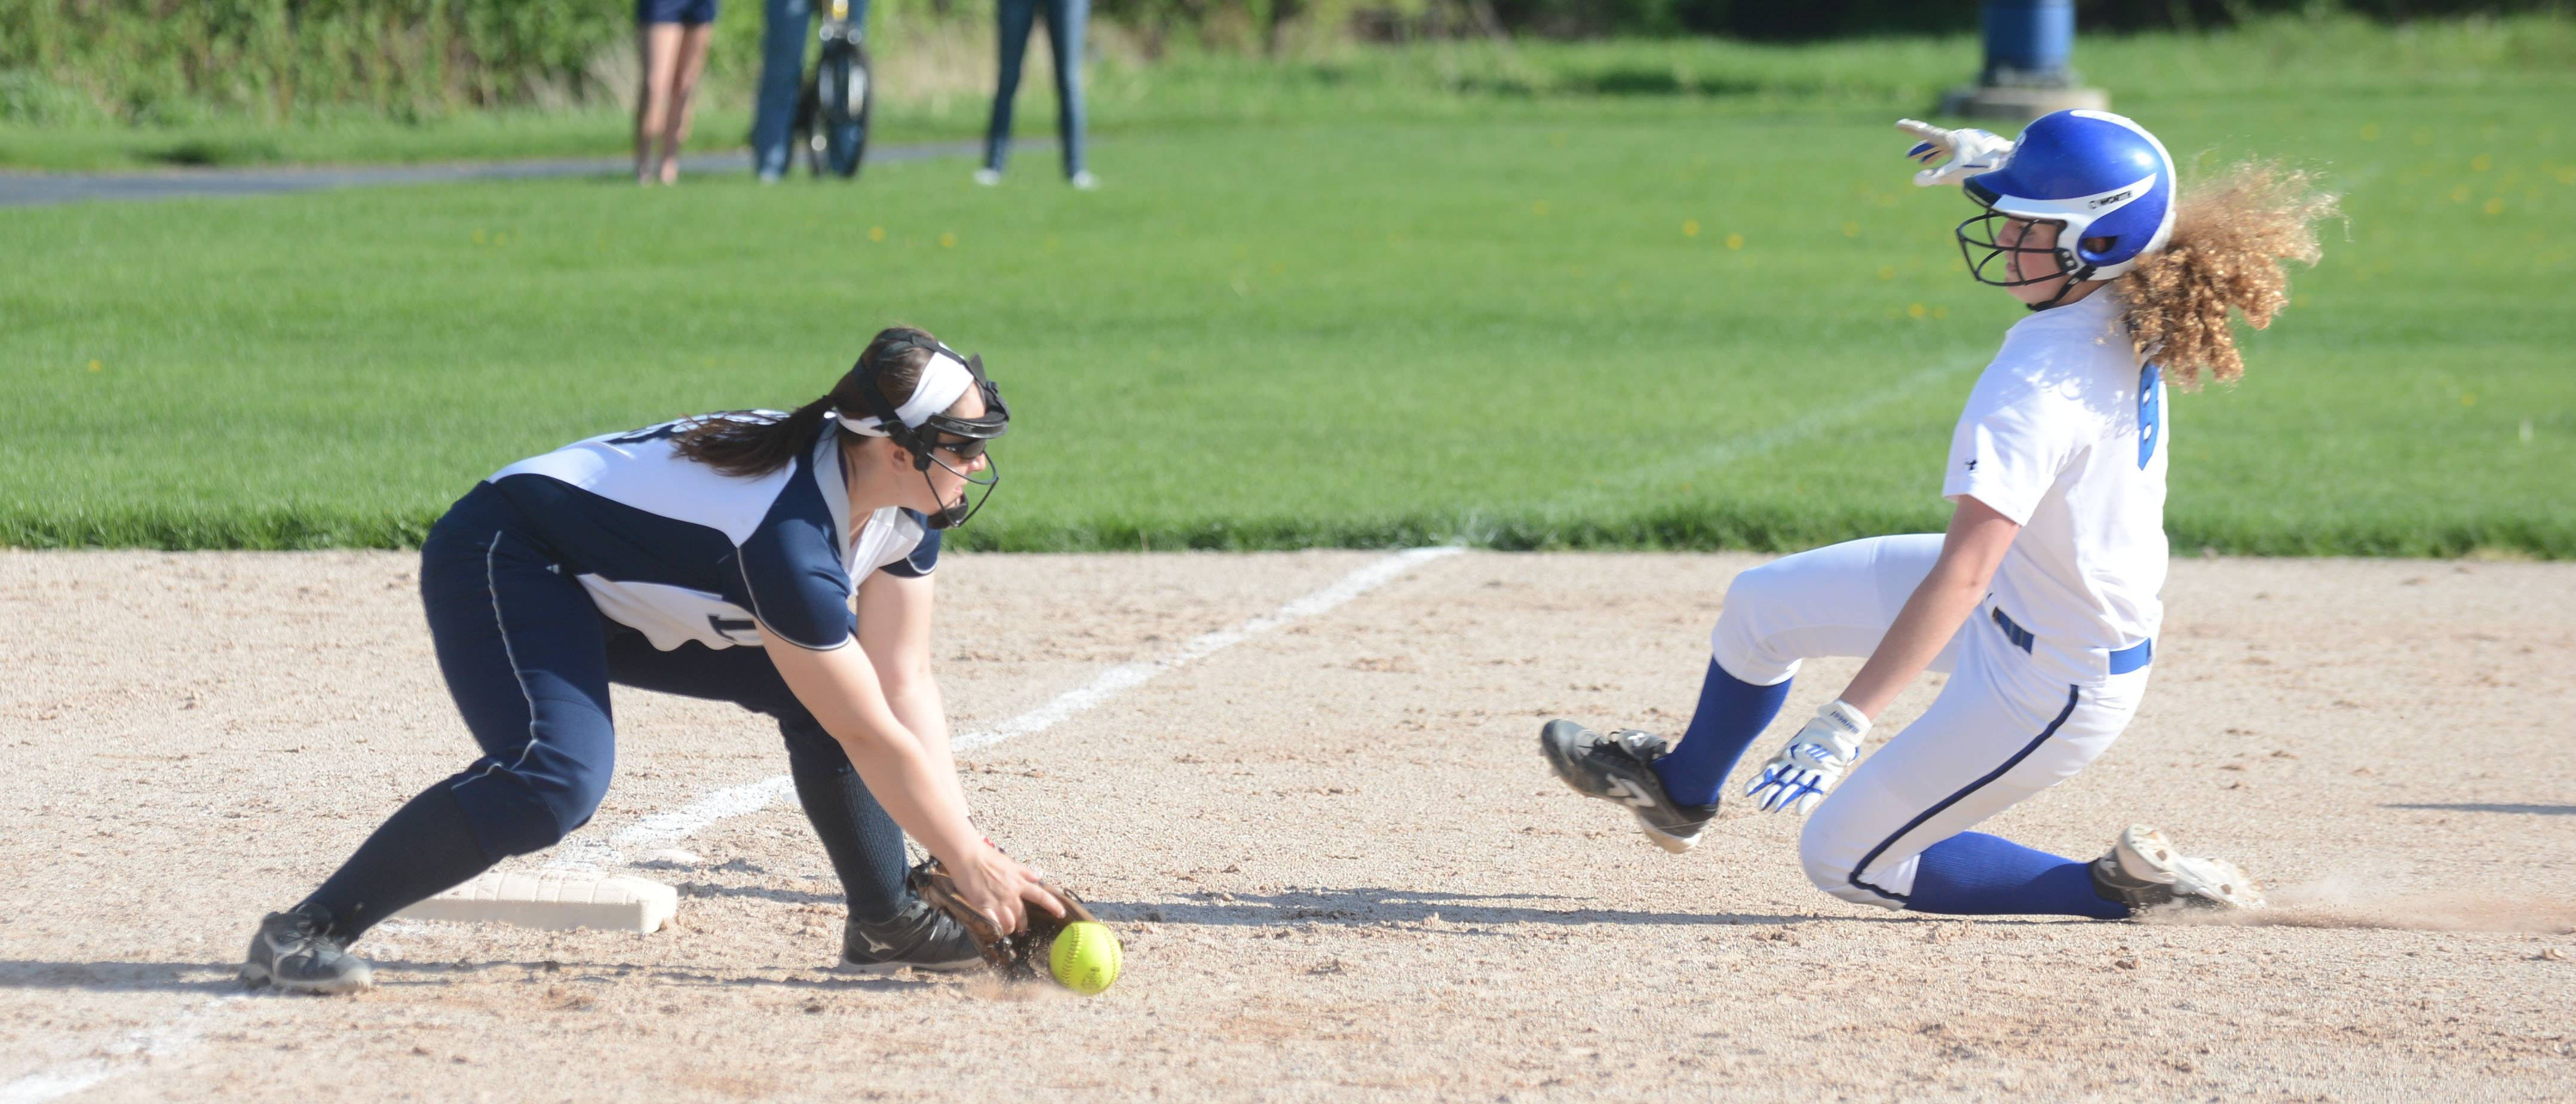 #18 Bella Daly of Lisle gets ready to put the tag on #9 of Peotone Jordan Nichols during the Peotone at Lisle softball game Friday.